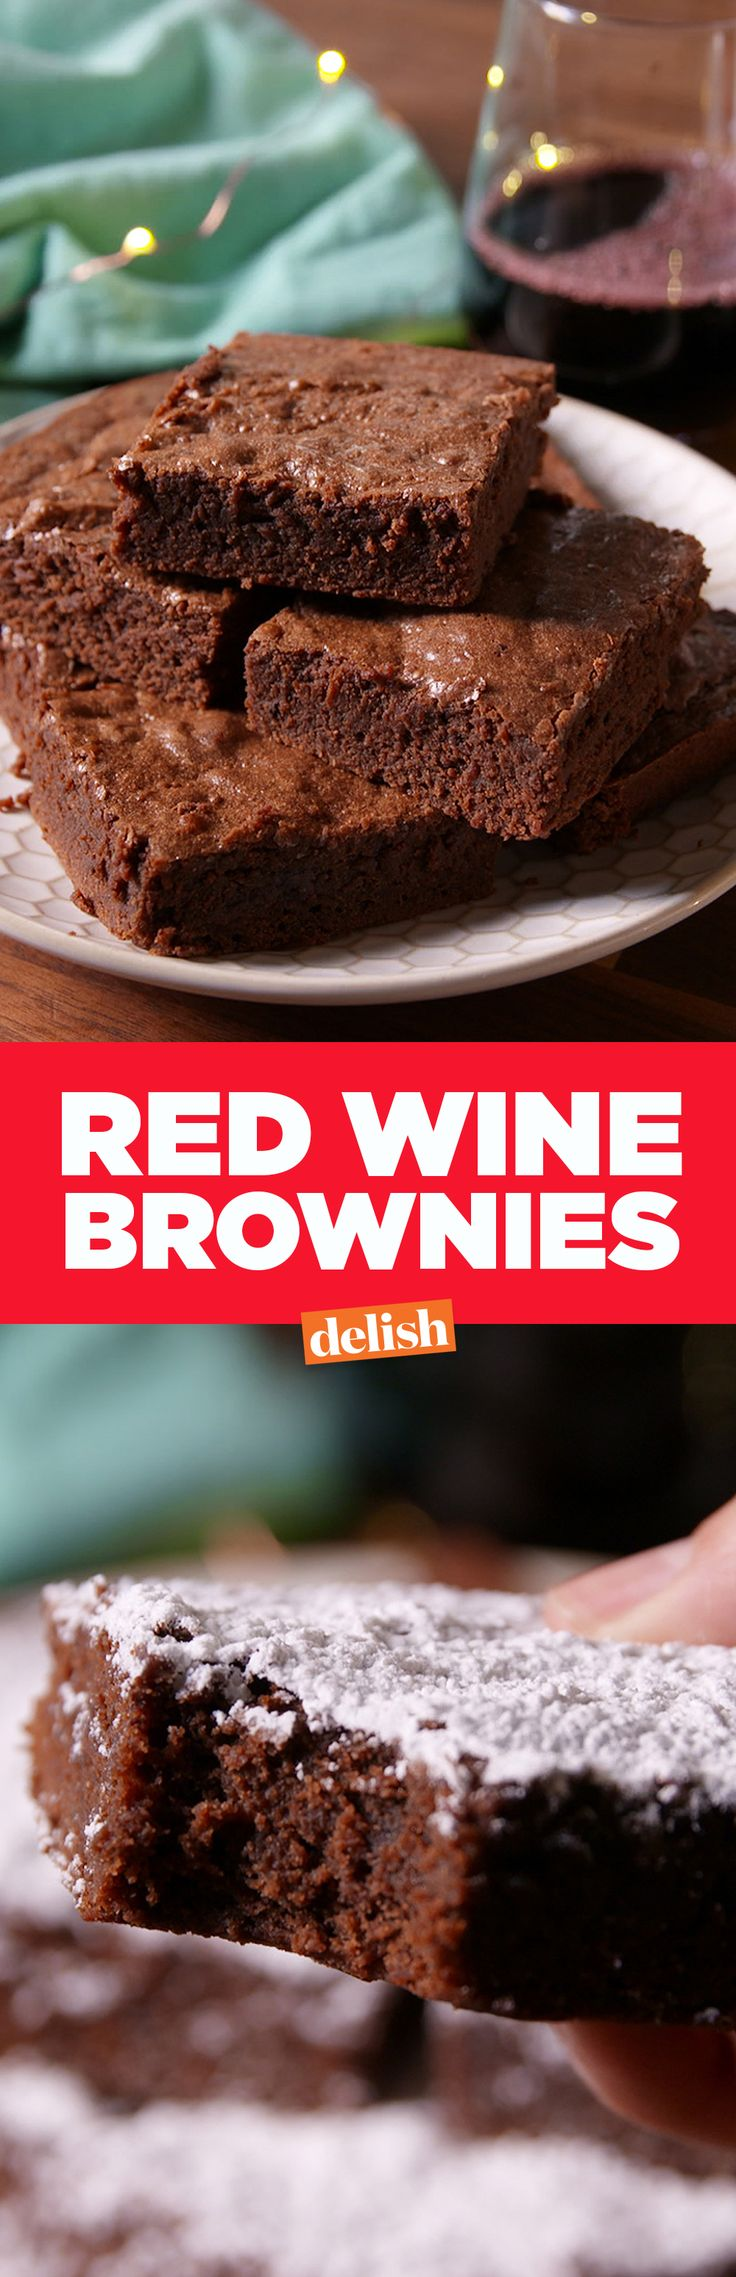 Red Wine Brownies are the sweetest way to unwind. Get the recipe on Delish.com.